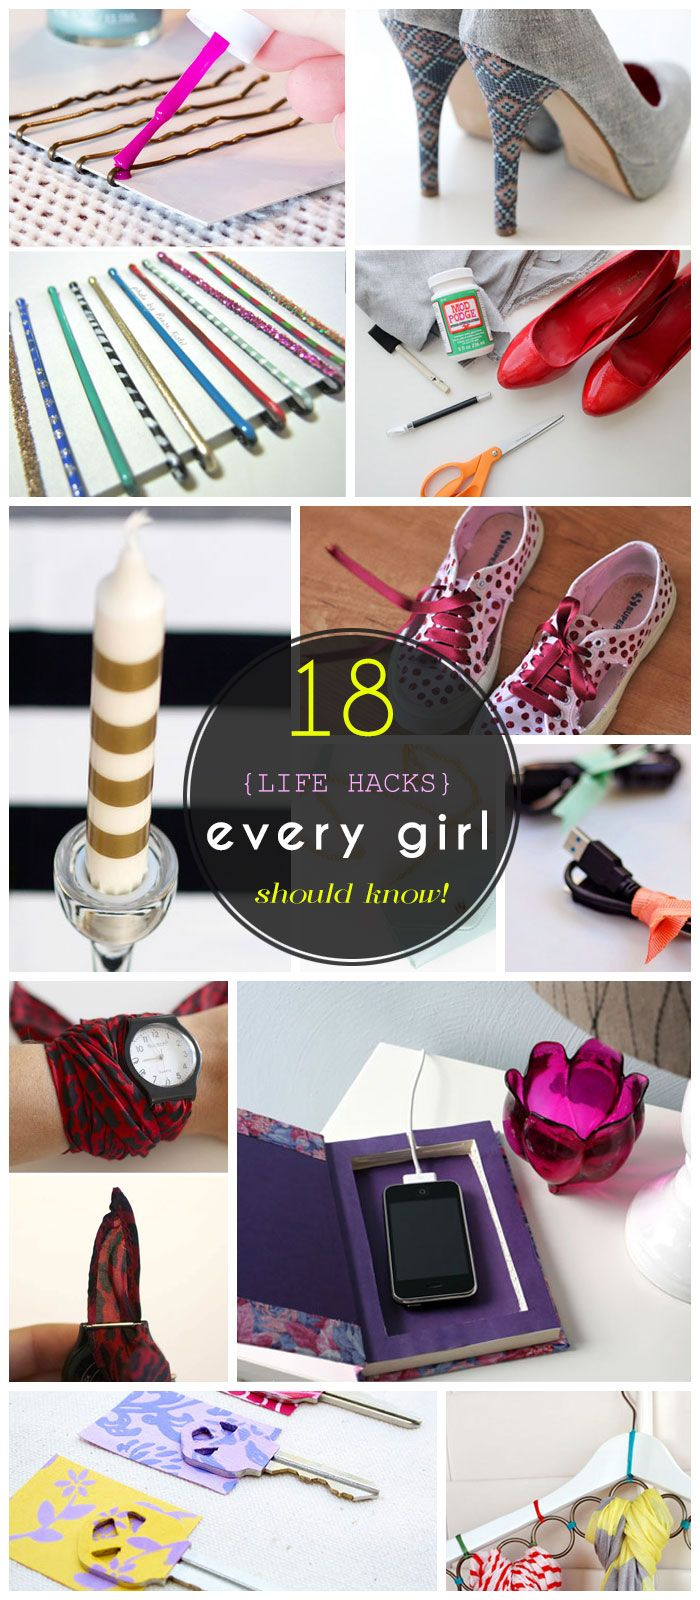 23 Life Hacks Every Girl Should Know | Easy DIY Projects for the Home